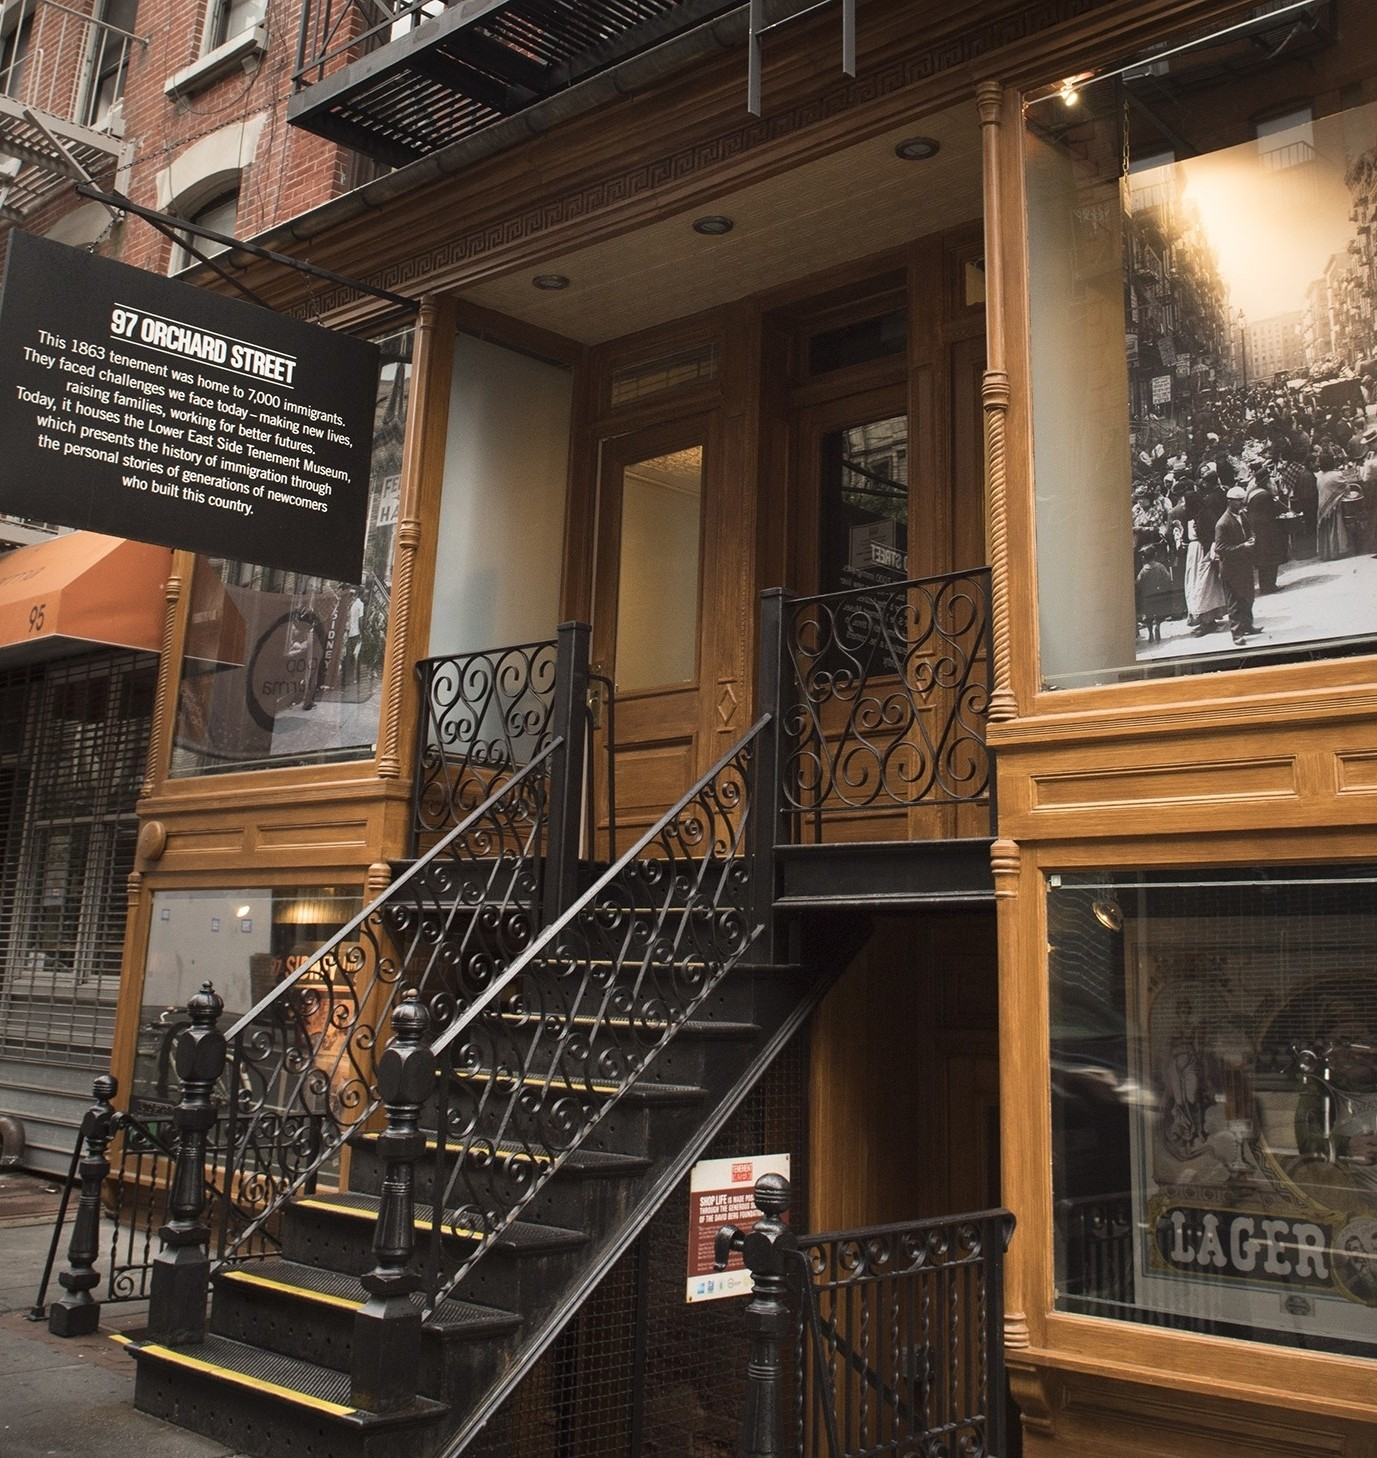 A black placard describing the history of the Museum building hangs above black steps leading up to the doors of 97 Orchard Street